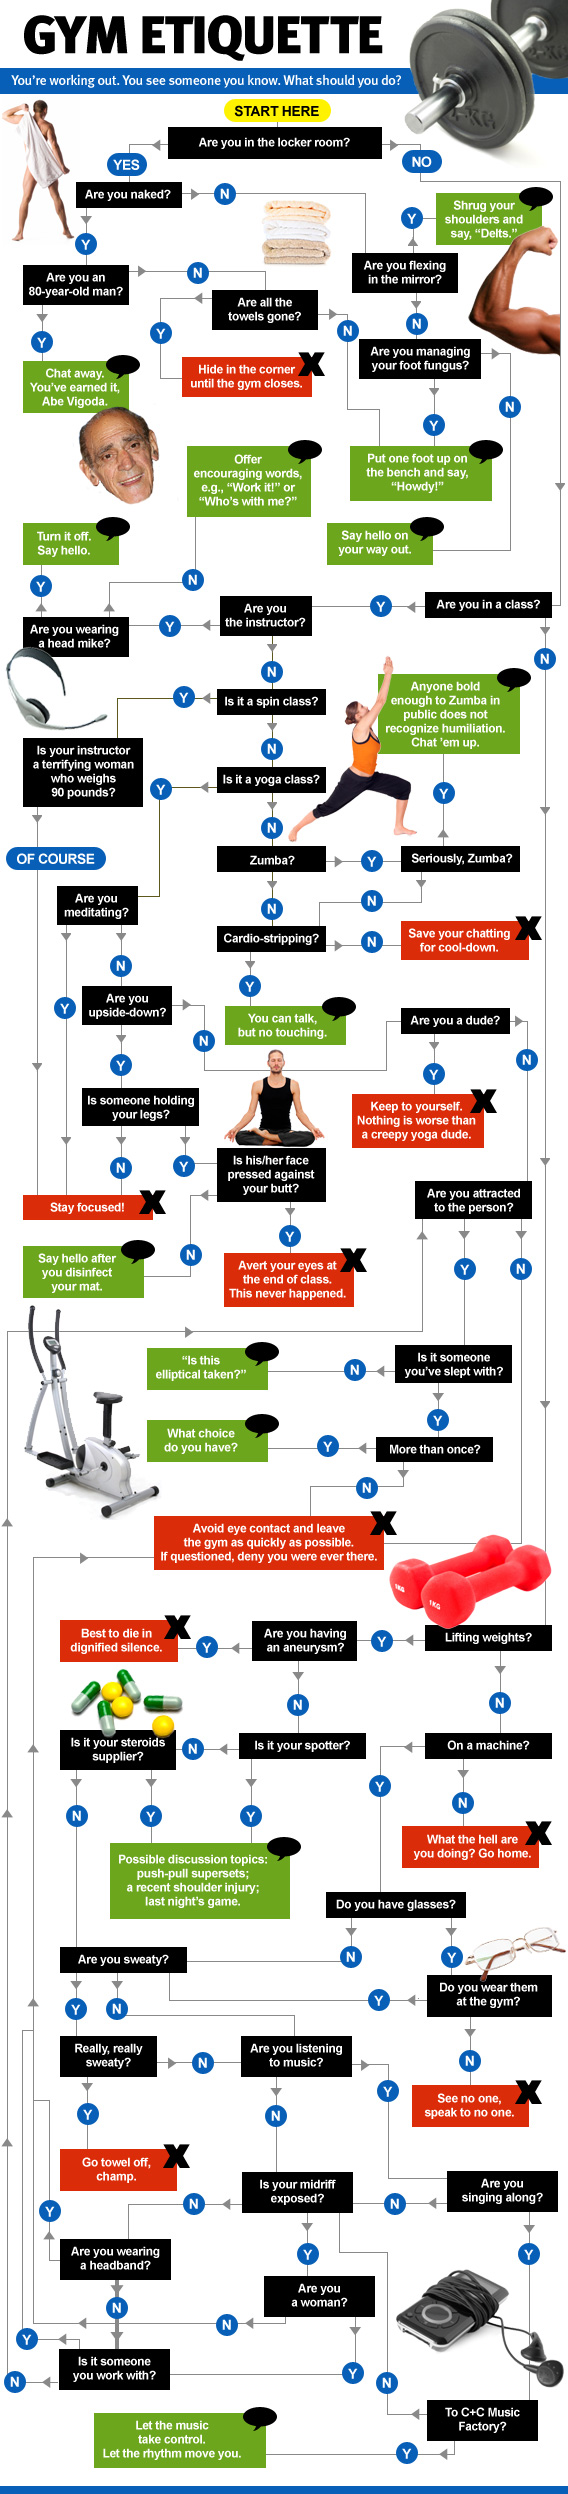 Gym etiquette flow chart st eutychus heres a flowchart from slate nvjuhfo Images